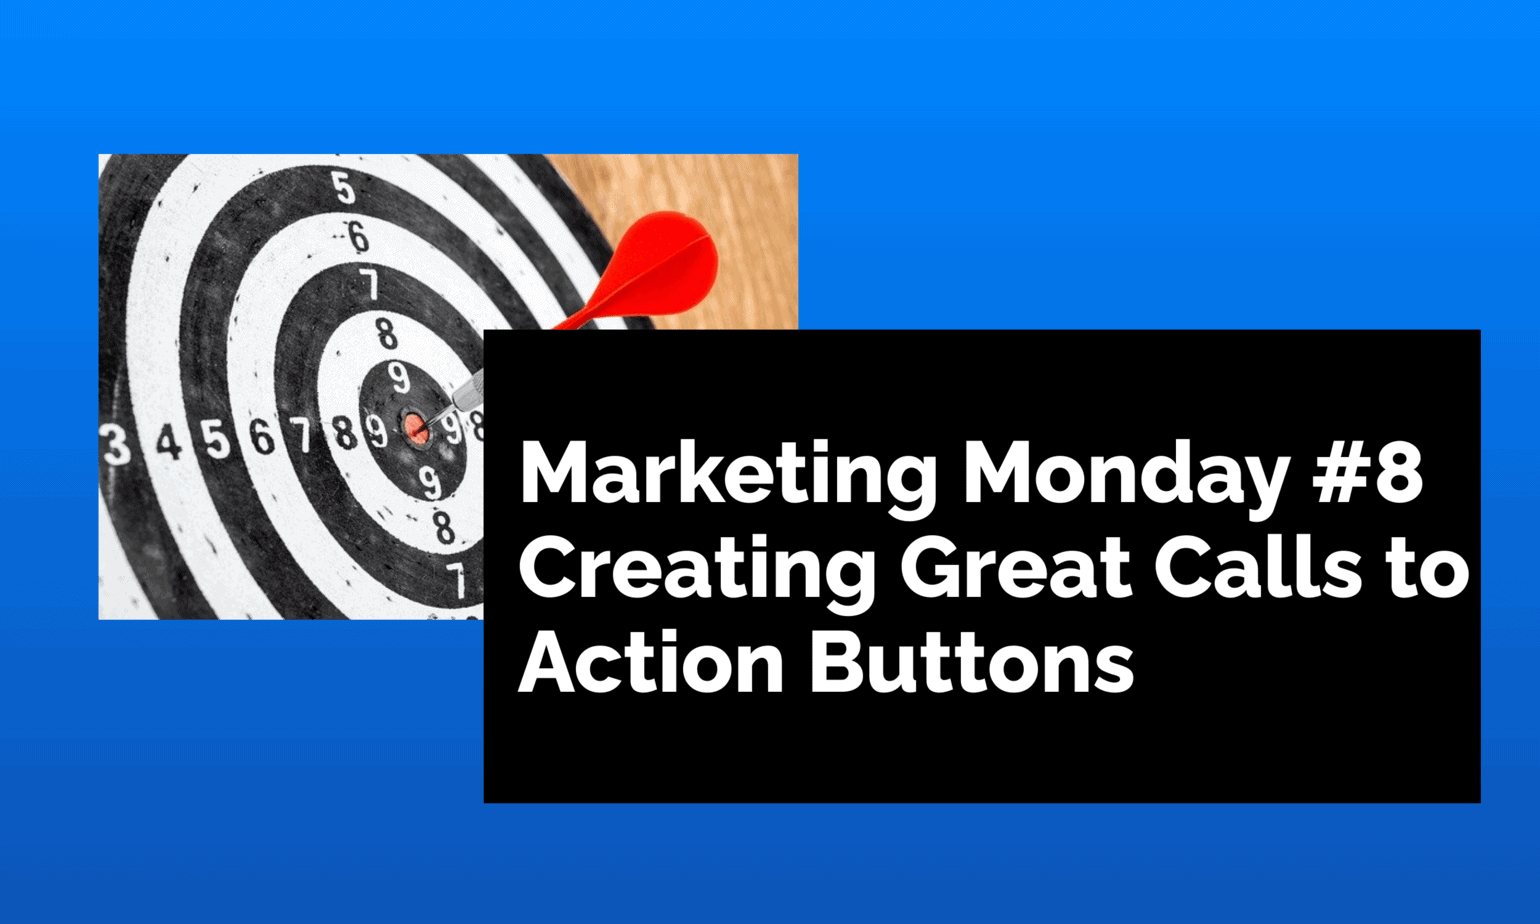 Creating Great Calls to Action Buttons